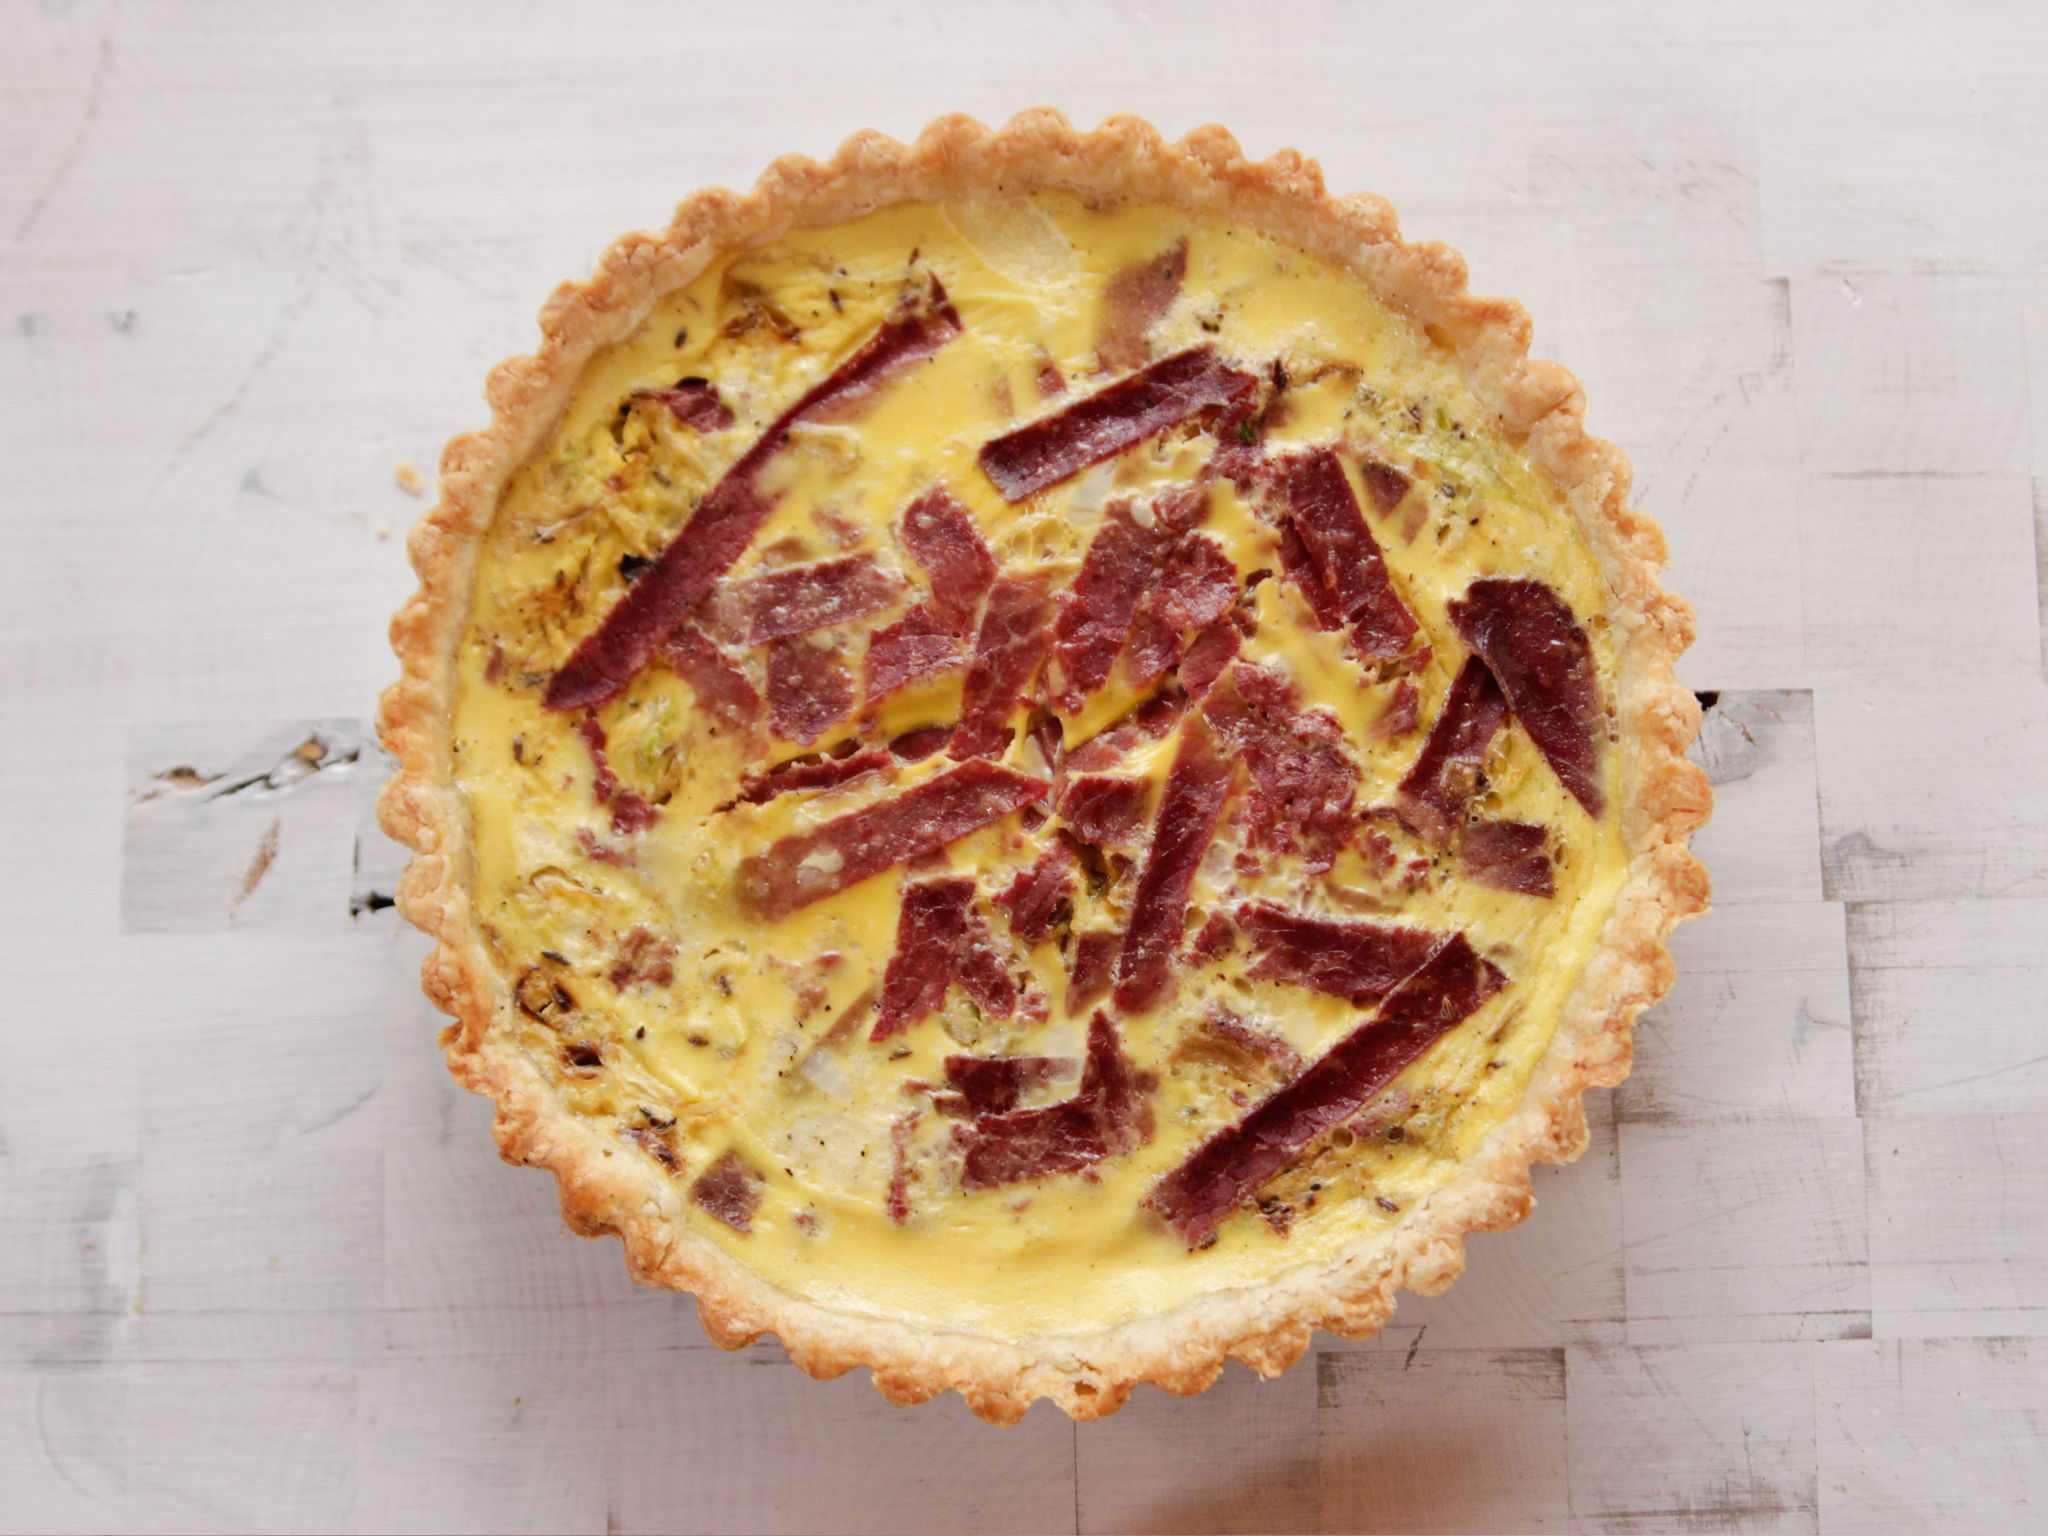 Corned beef and cabbage quiche recipe quiche recipes quiches corned beef and cabbage quiche recipe quiche recipes quiches and cabbage forumfinder Image collections